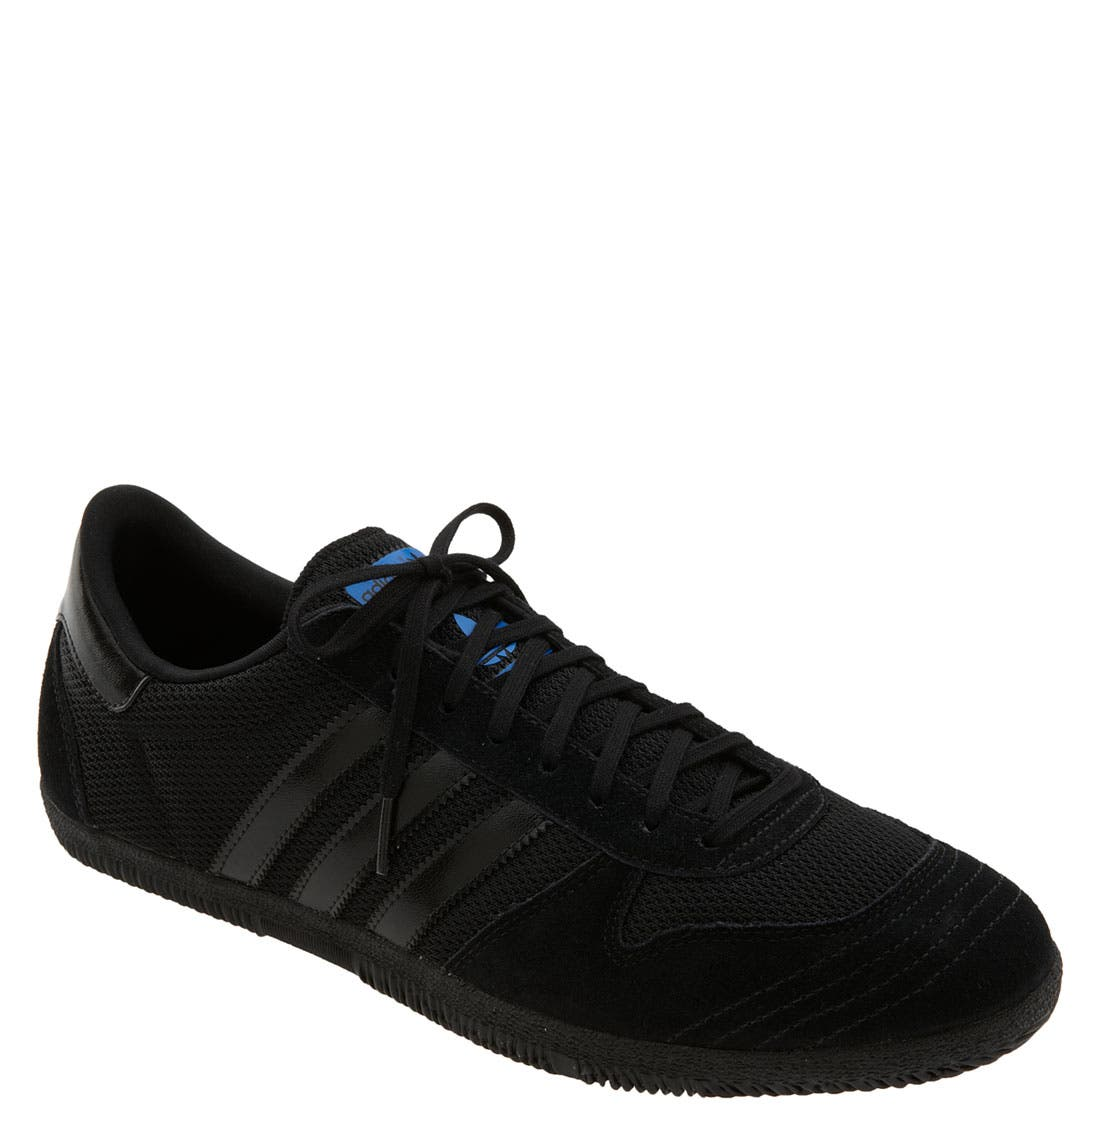 ADIDAS 'Net 80' Sneaker, Main, color, 001